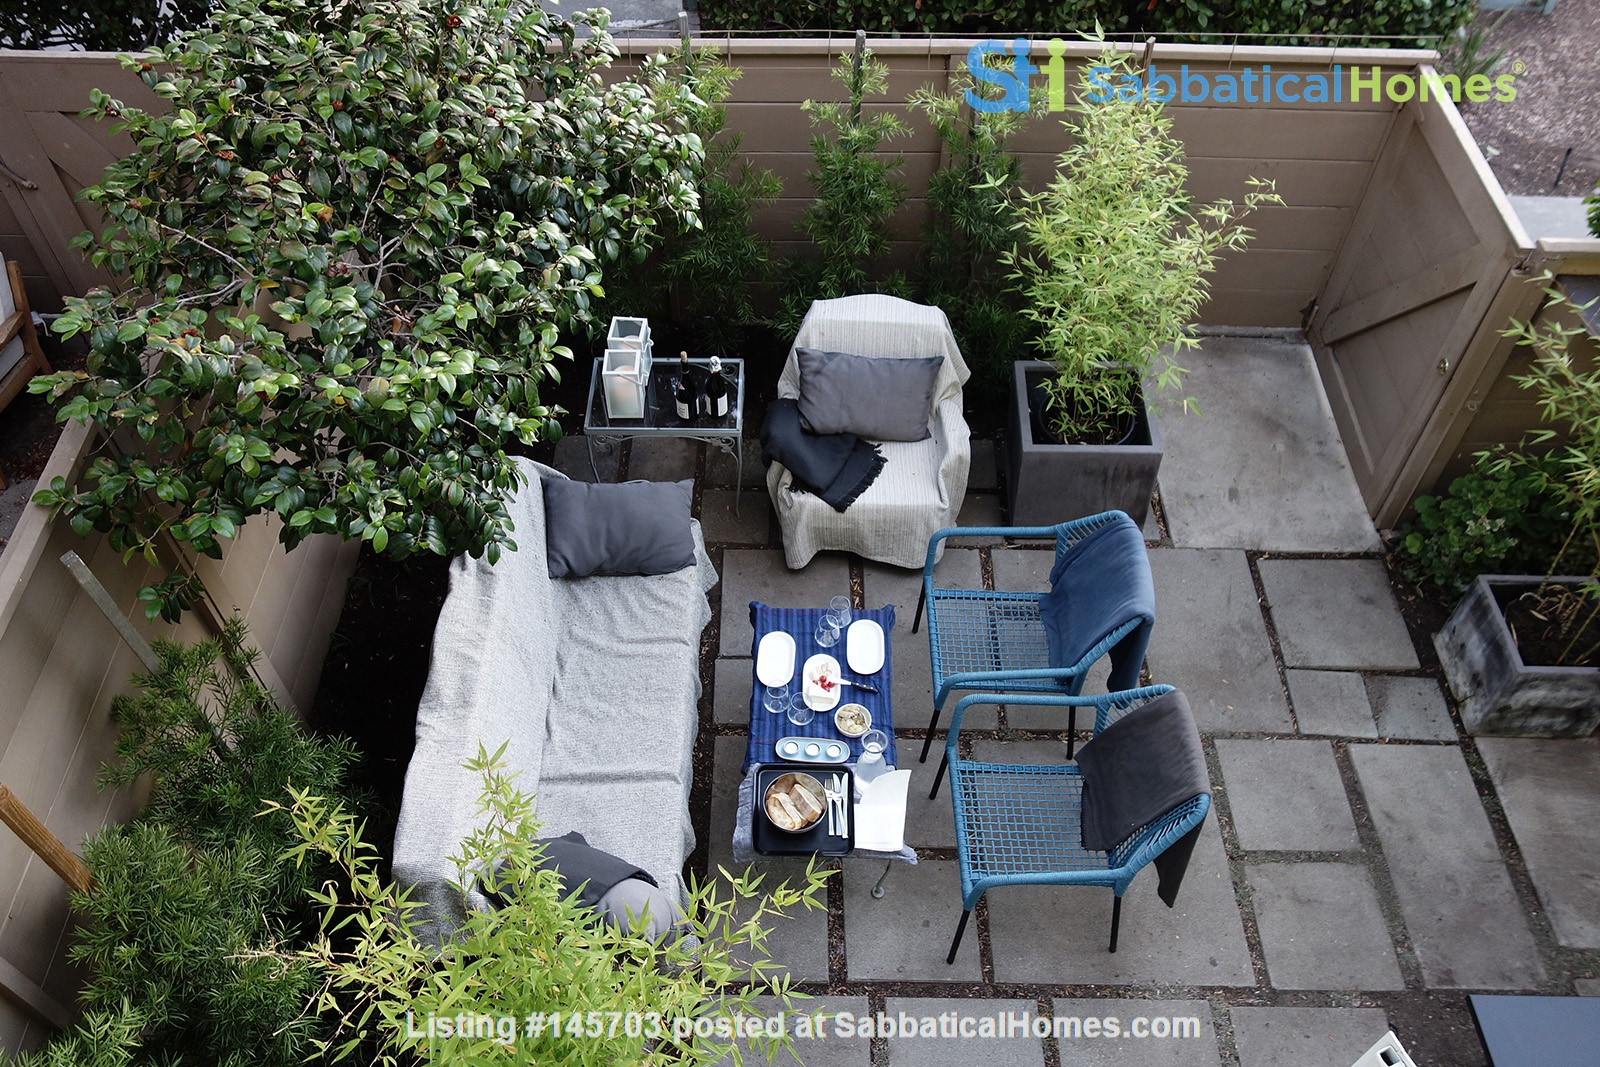 Light-filled 2BR townhouse with large patio in urban oasis in Los Angeles Home Rental in Los Angeles, California, United States 2